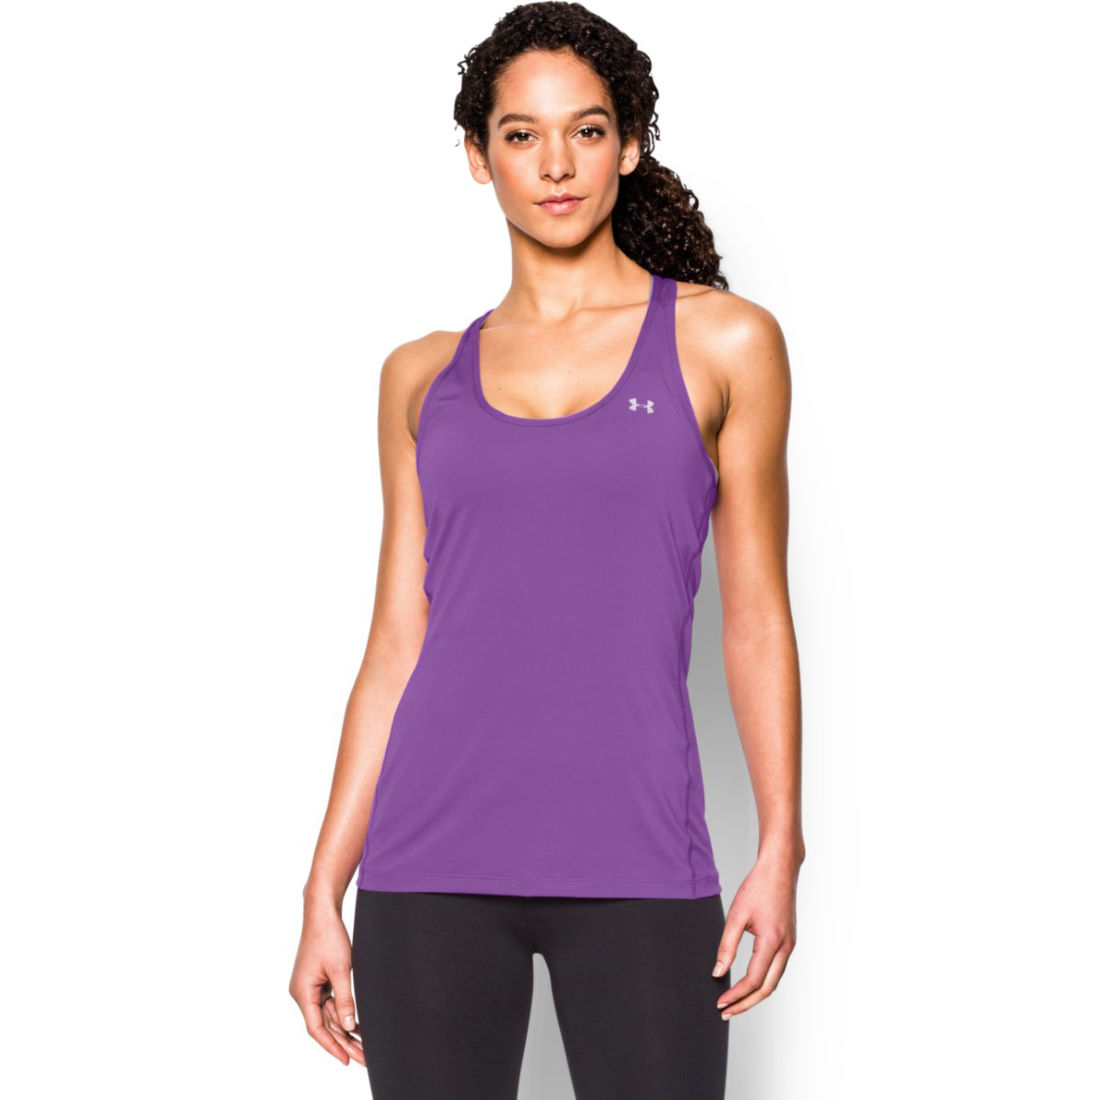 armour single girls Crush the competition wearing these women's under armour ankle leggings  men don't need the double stitch in front one single stitch up the middle is perfect.